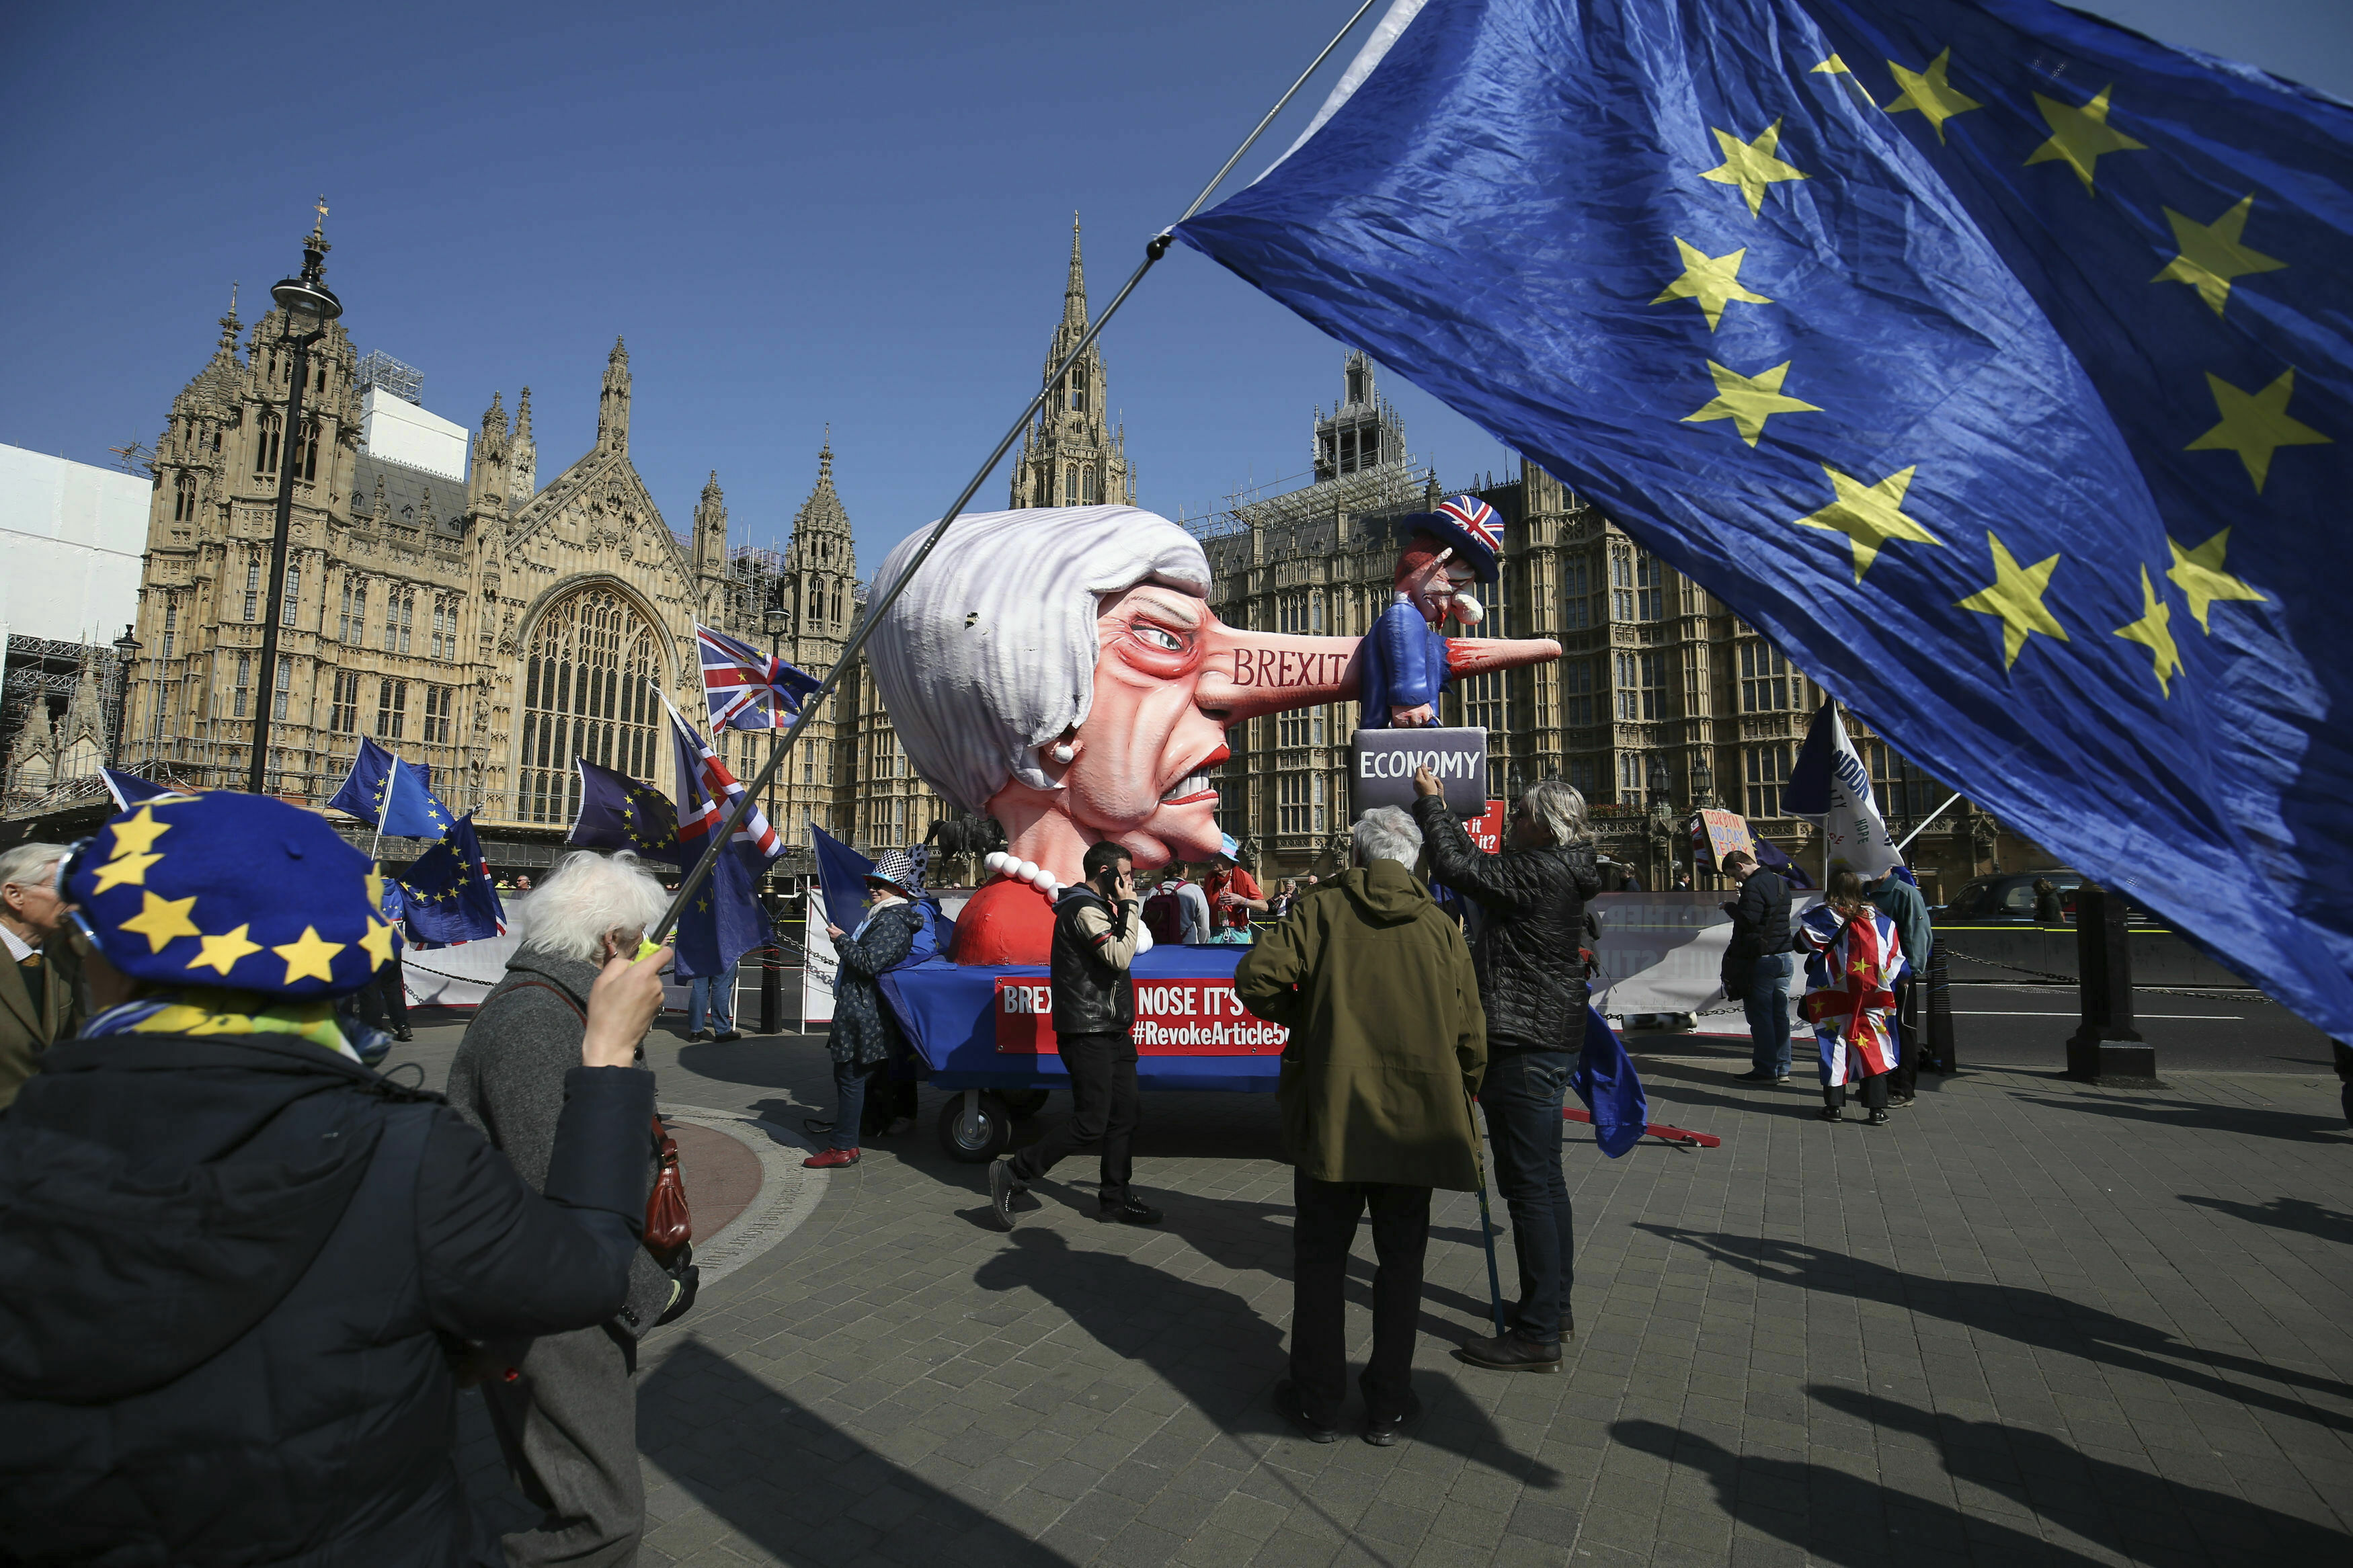 Anti-Brexit demonstrators near College Green at the Houses of Parliament in London, on April 1, 2019.